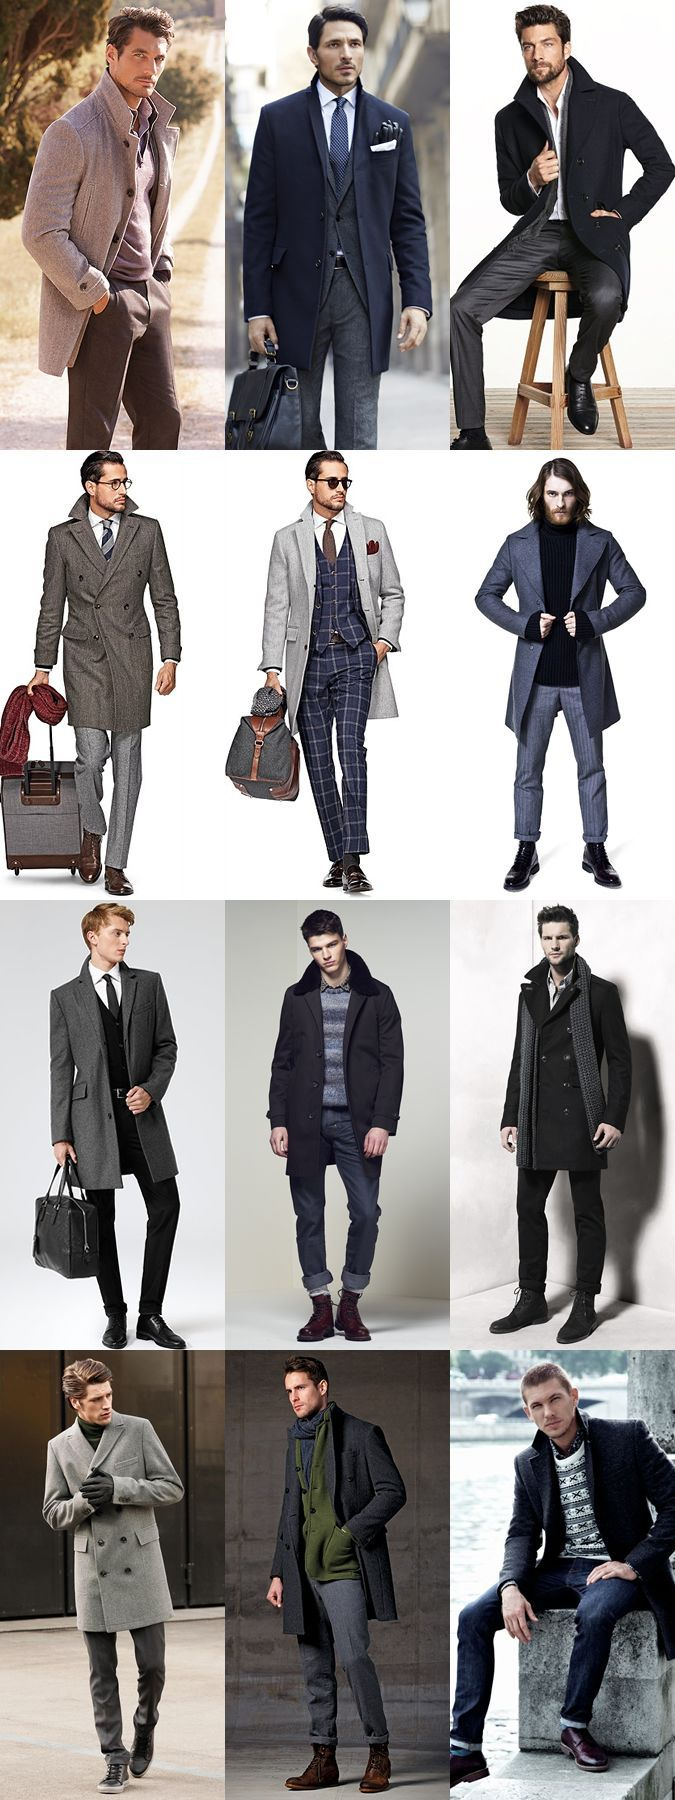 How to Wear an Overcoat Sampler. Men's Fall Winter Fashion Inspiration.